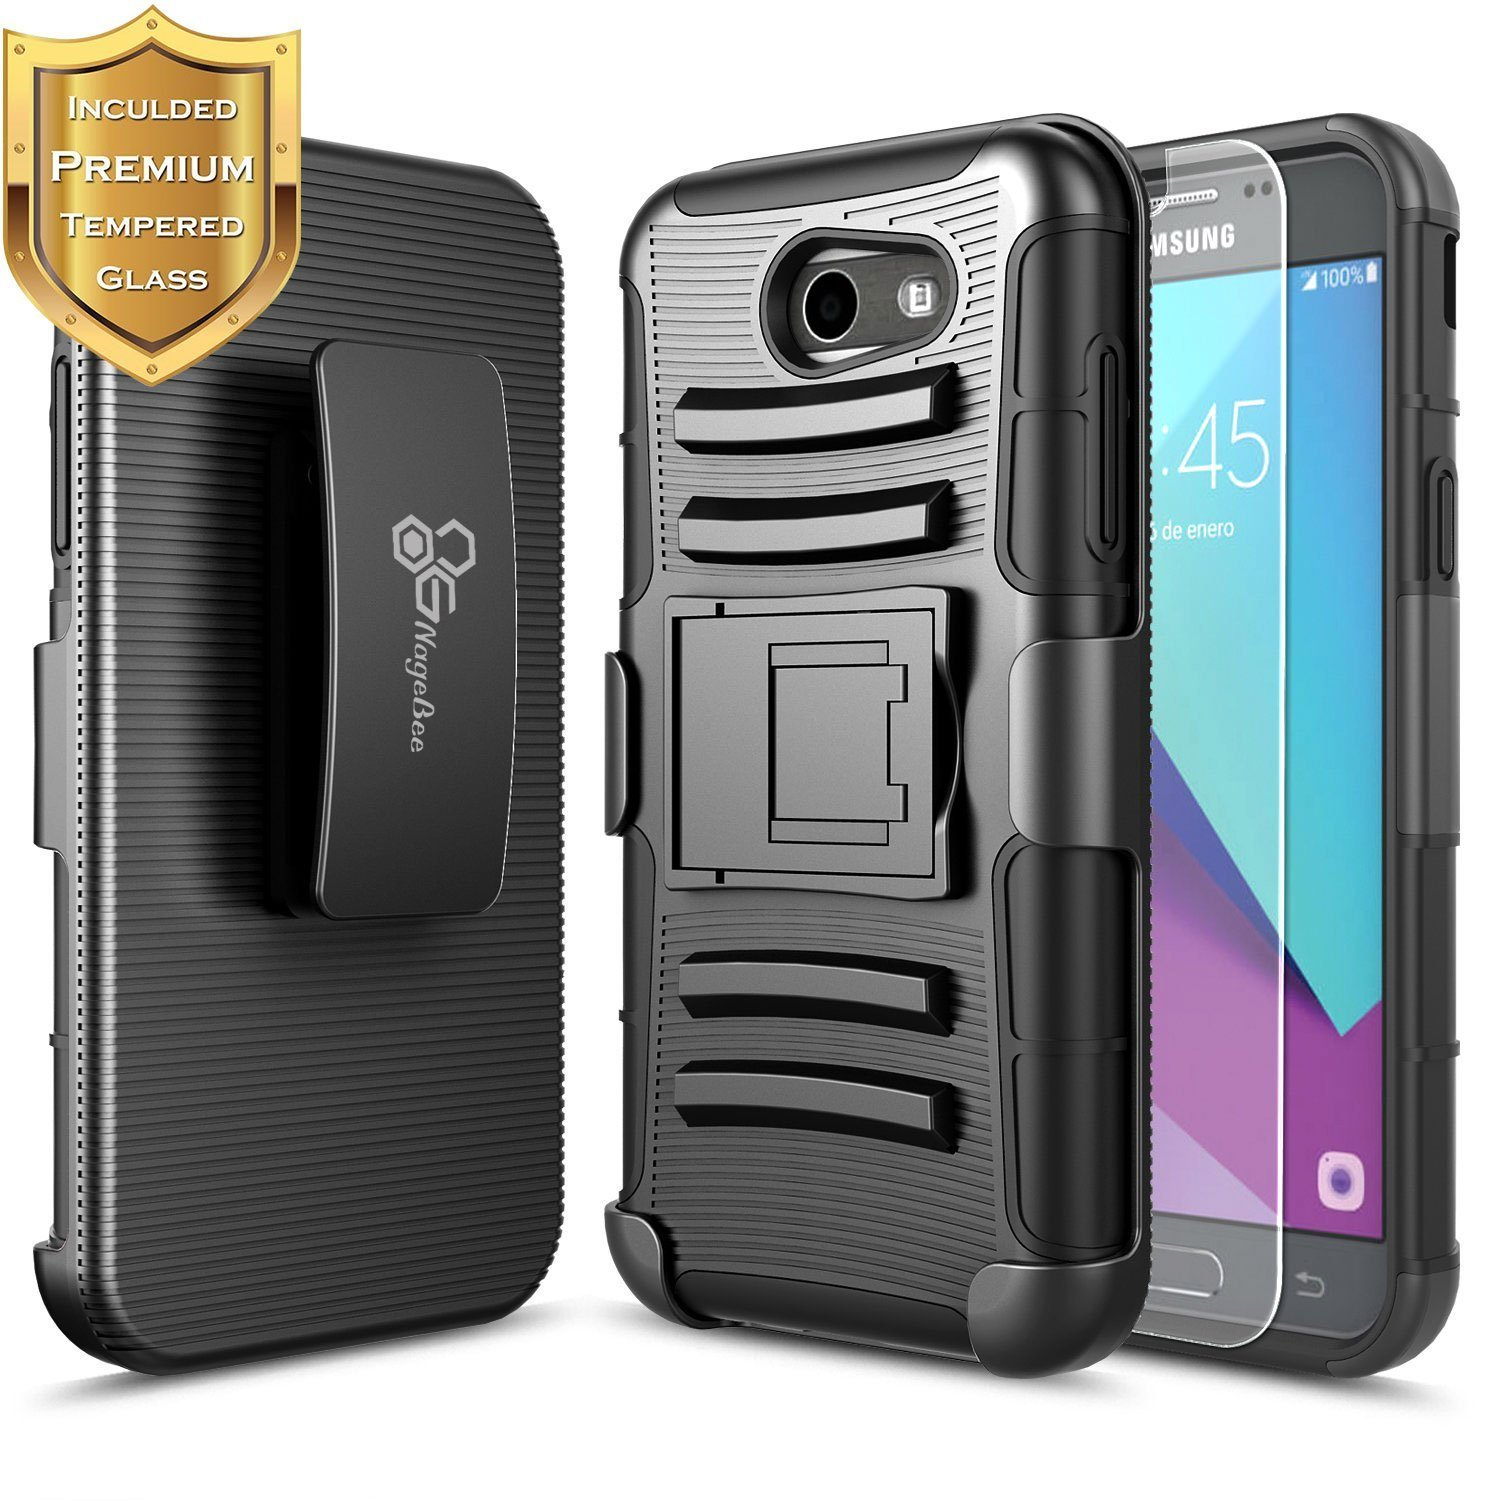 Amazon Galaxy J3 Luna Pro Case Galaxy J3 Eclipse Case Galaxy J3 Mission Case with [Tempered Glass Screen Protector] NageBee [Heavy Duty] [Belt Clip]